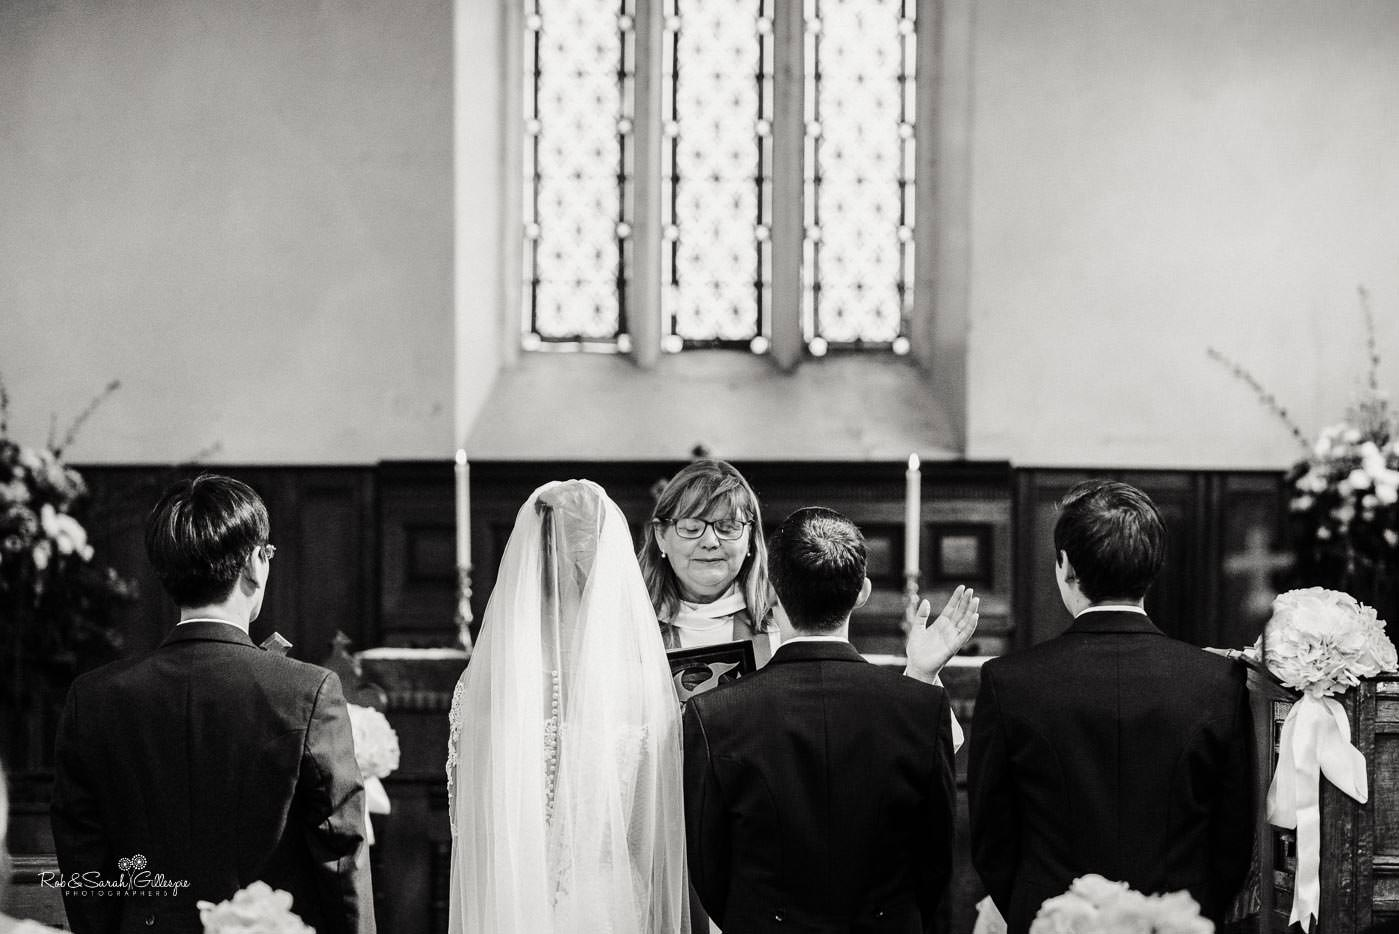 Wedding ceremony at St Peter's church Bourton-on-Dunsmore photographed by Rob & Sarah Gillespie